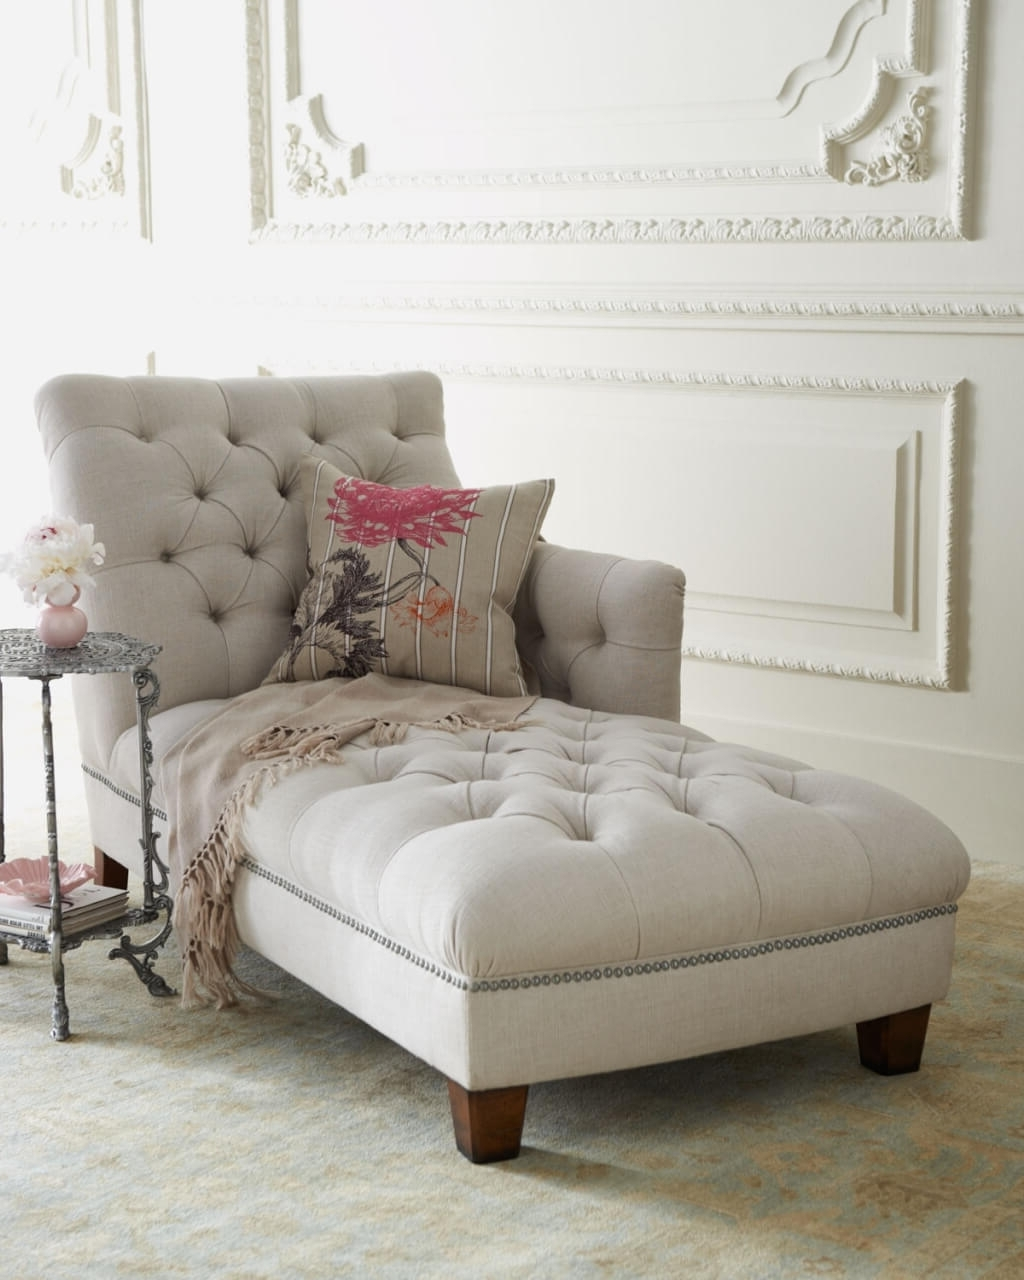 Round Chaises With Recent Furniture: Relaxing White Tufted Chaise Lounge With Small Round (View 11 of 15)